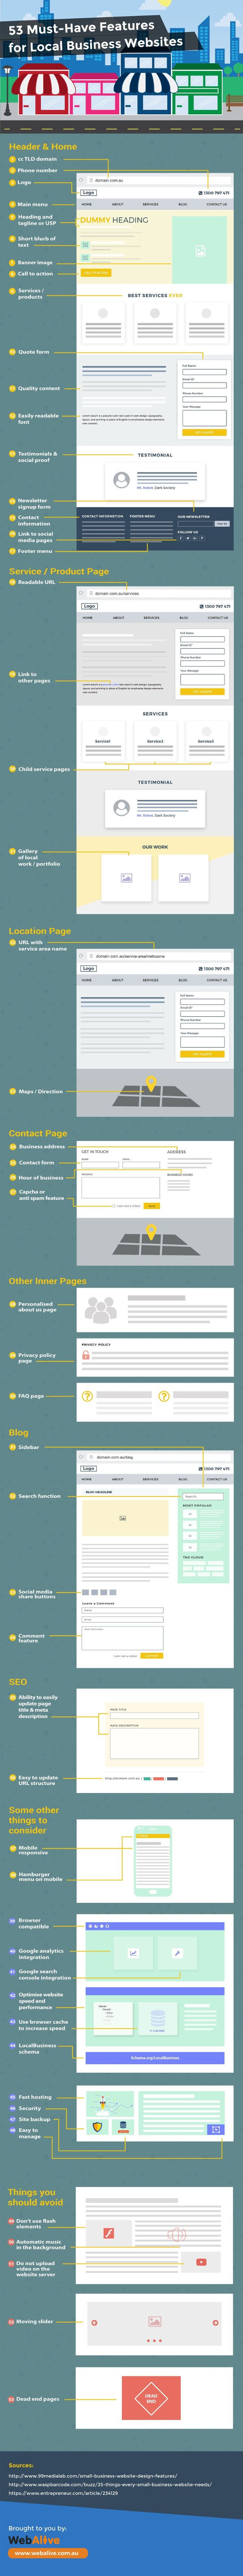 Because your website is the main source of information sharing and consumer interaction, you should not only consider content, but also content presentation, as well as other features that facilitate easy communication. Here are 53 Must-Have Features of Local Business Websites for you to use as a checklist. [Infographic]